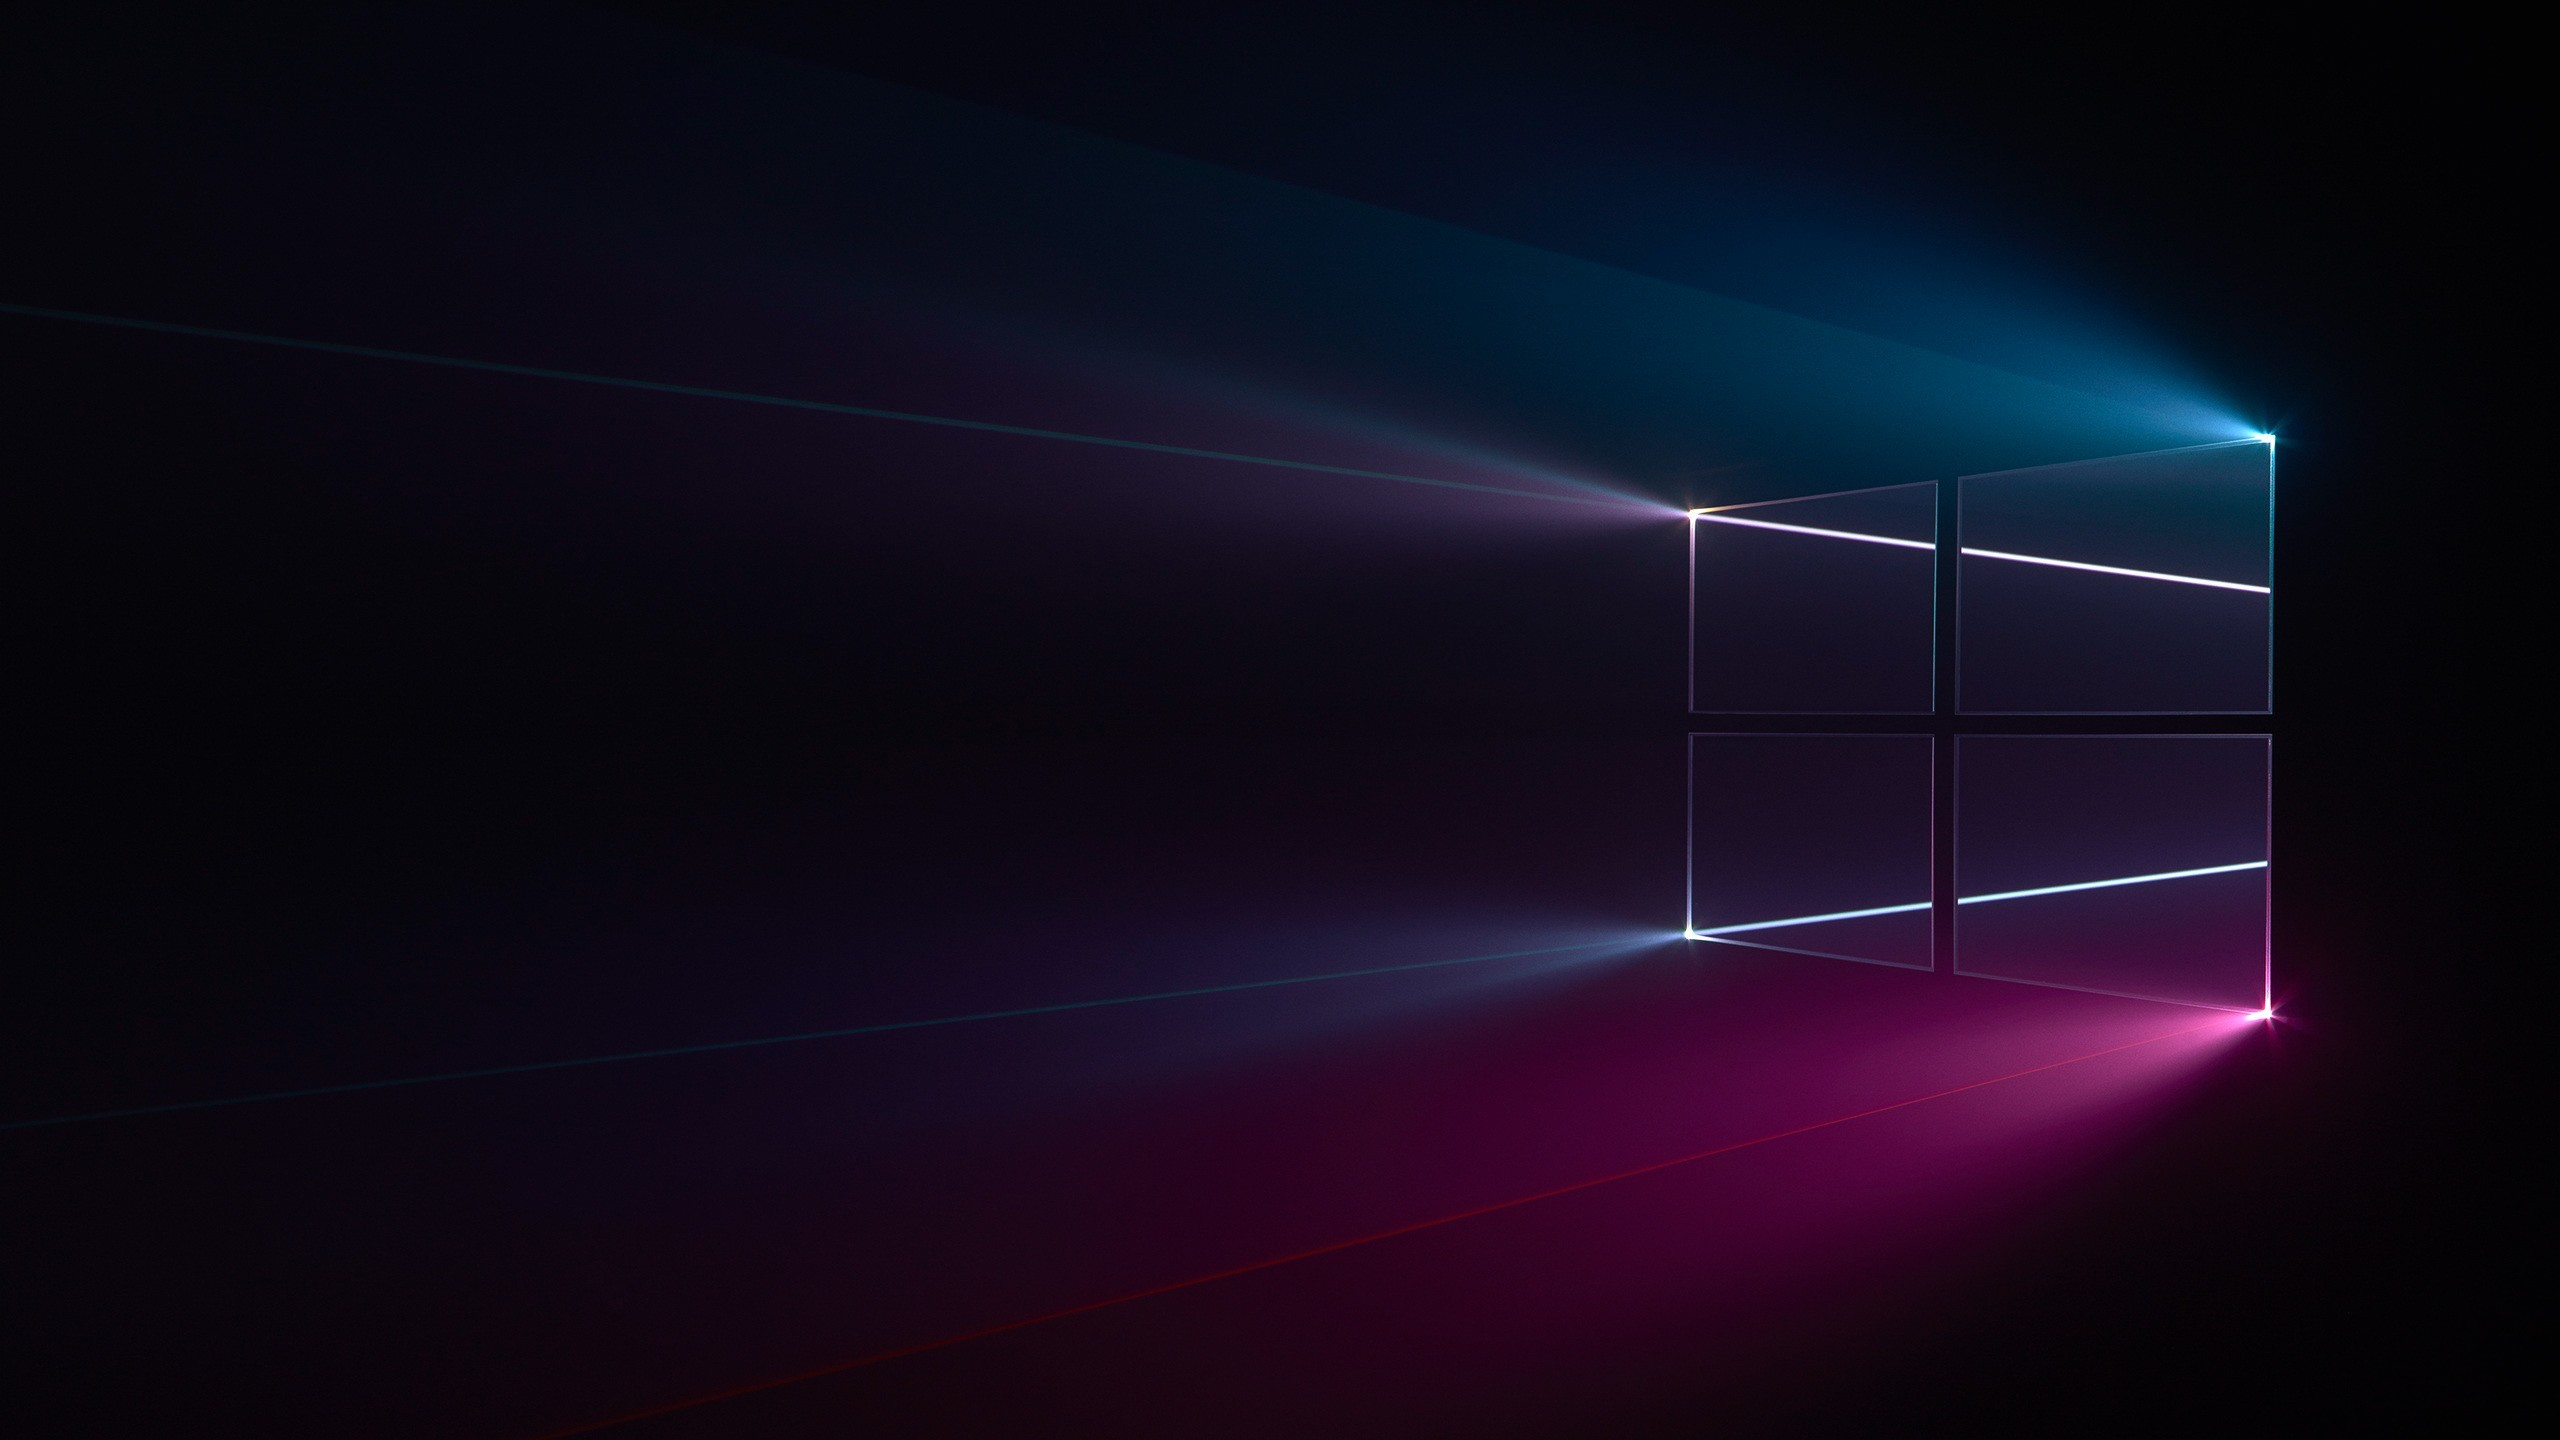 2560x1440 Technology / Windows 10 Wallpaper